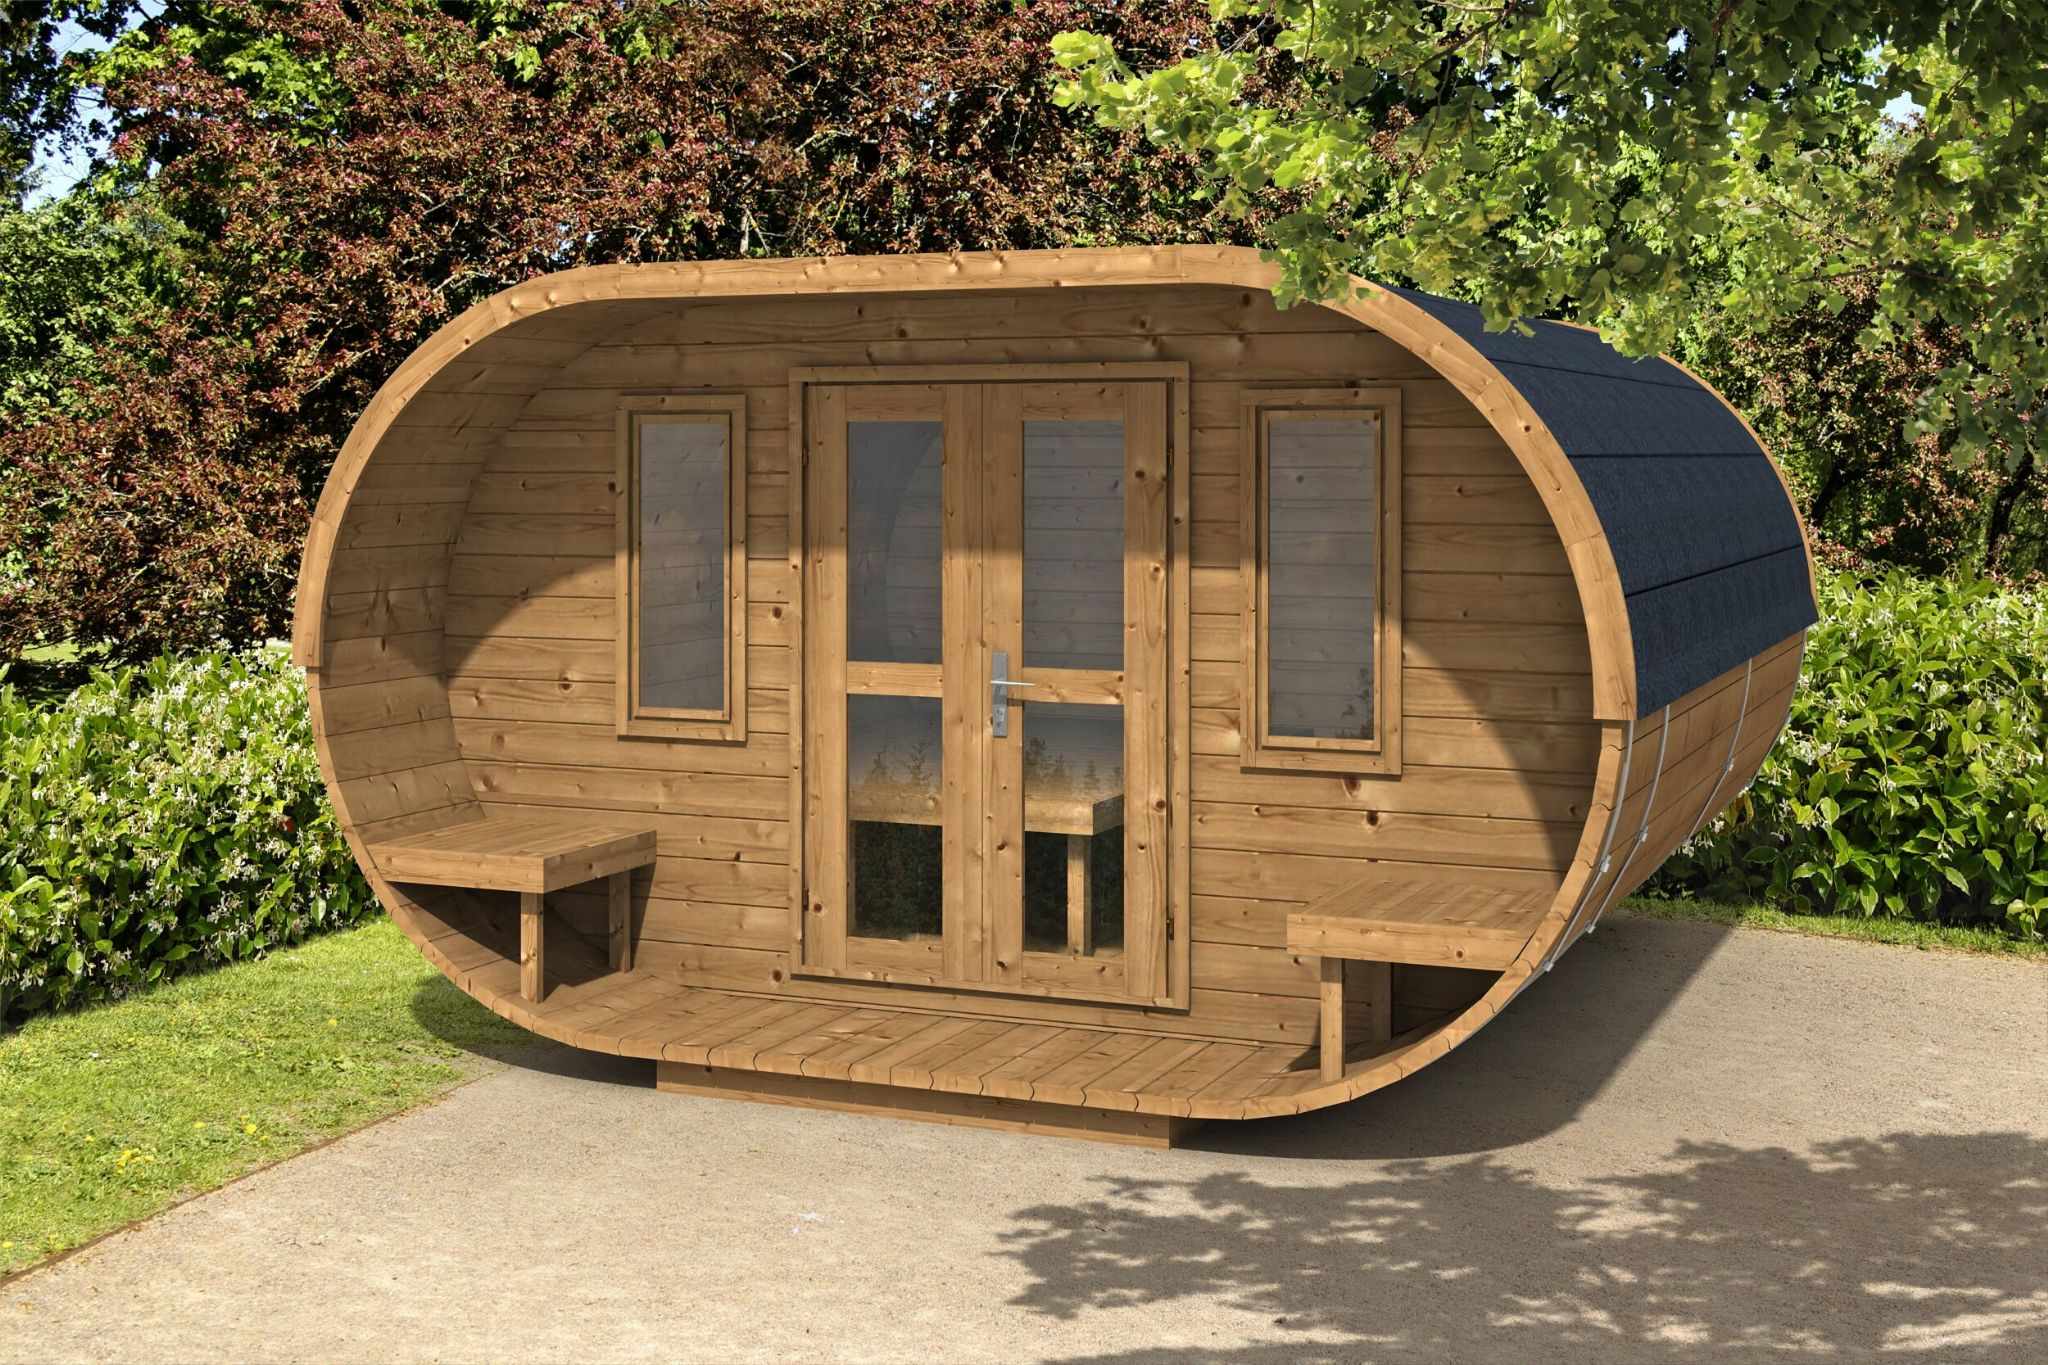 Large camping oval Aardvark joinery